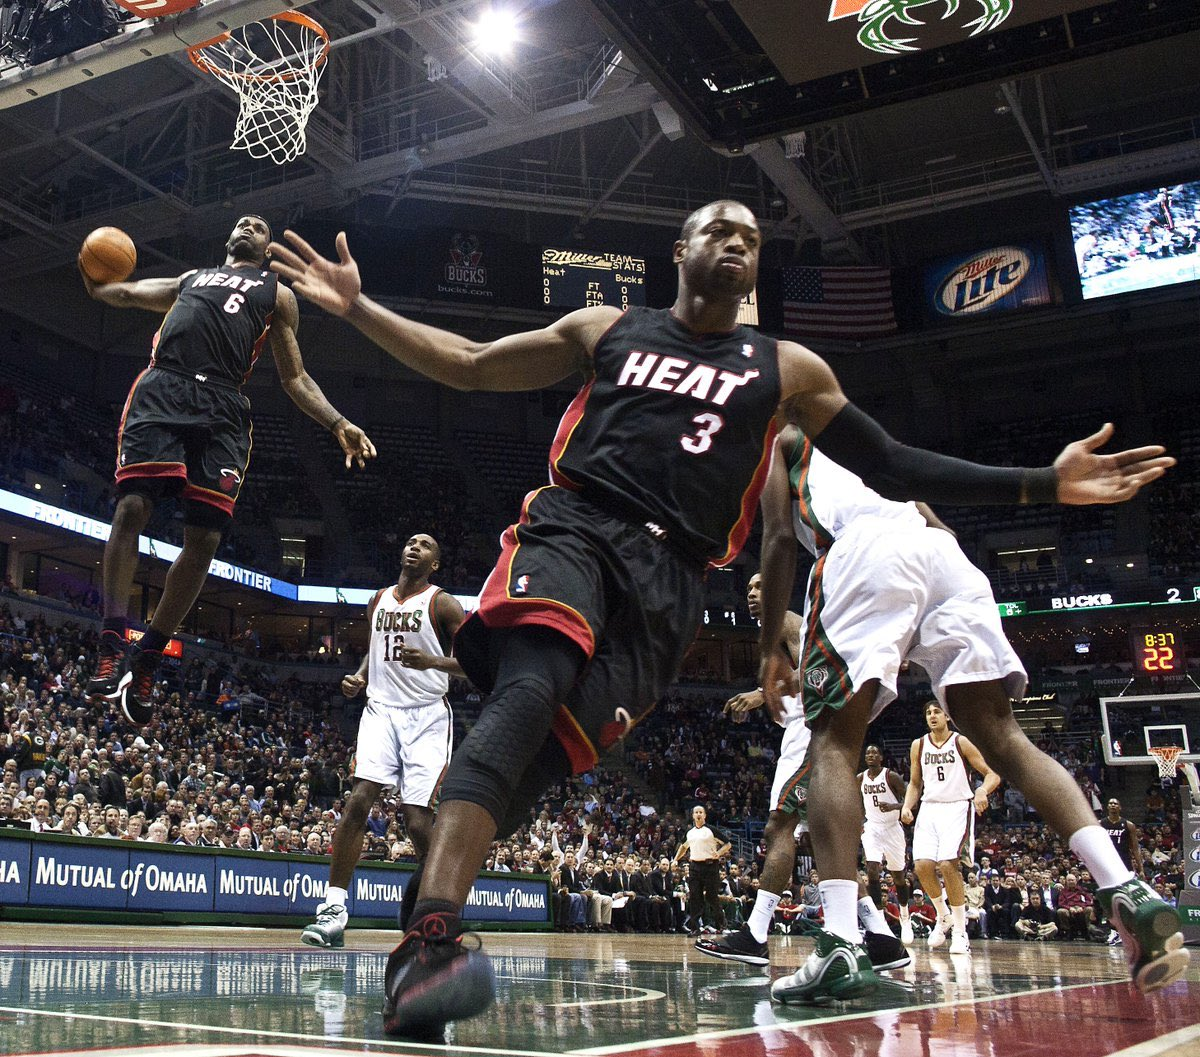 If I had to pick 3 of my most favorite @DwyaneWade Basketball Moments (after counting the 3 Miami NBA Championships) 😃 it would have to be these 3 #NBAMoments @NBA #DwyaneWade #WadeCounty @MiamiHEAT #L3GACY #HeatNation #OneLastDance Thank You!!!!